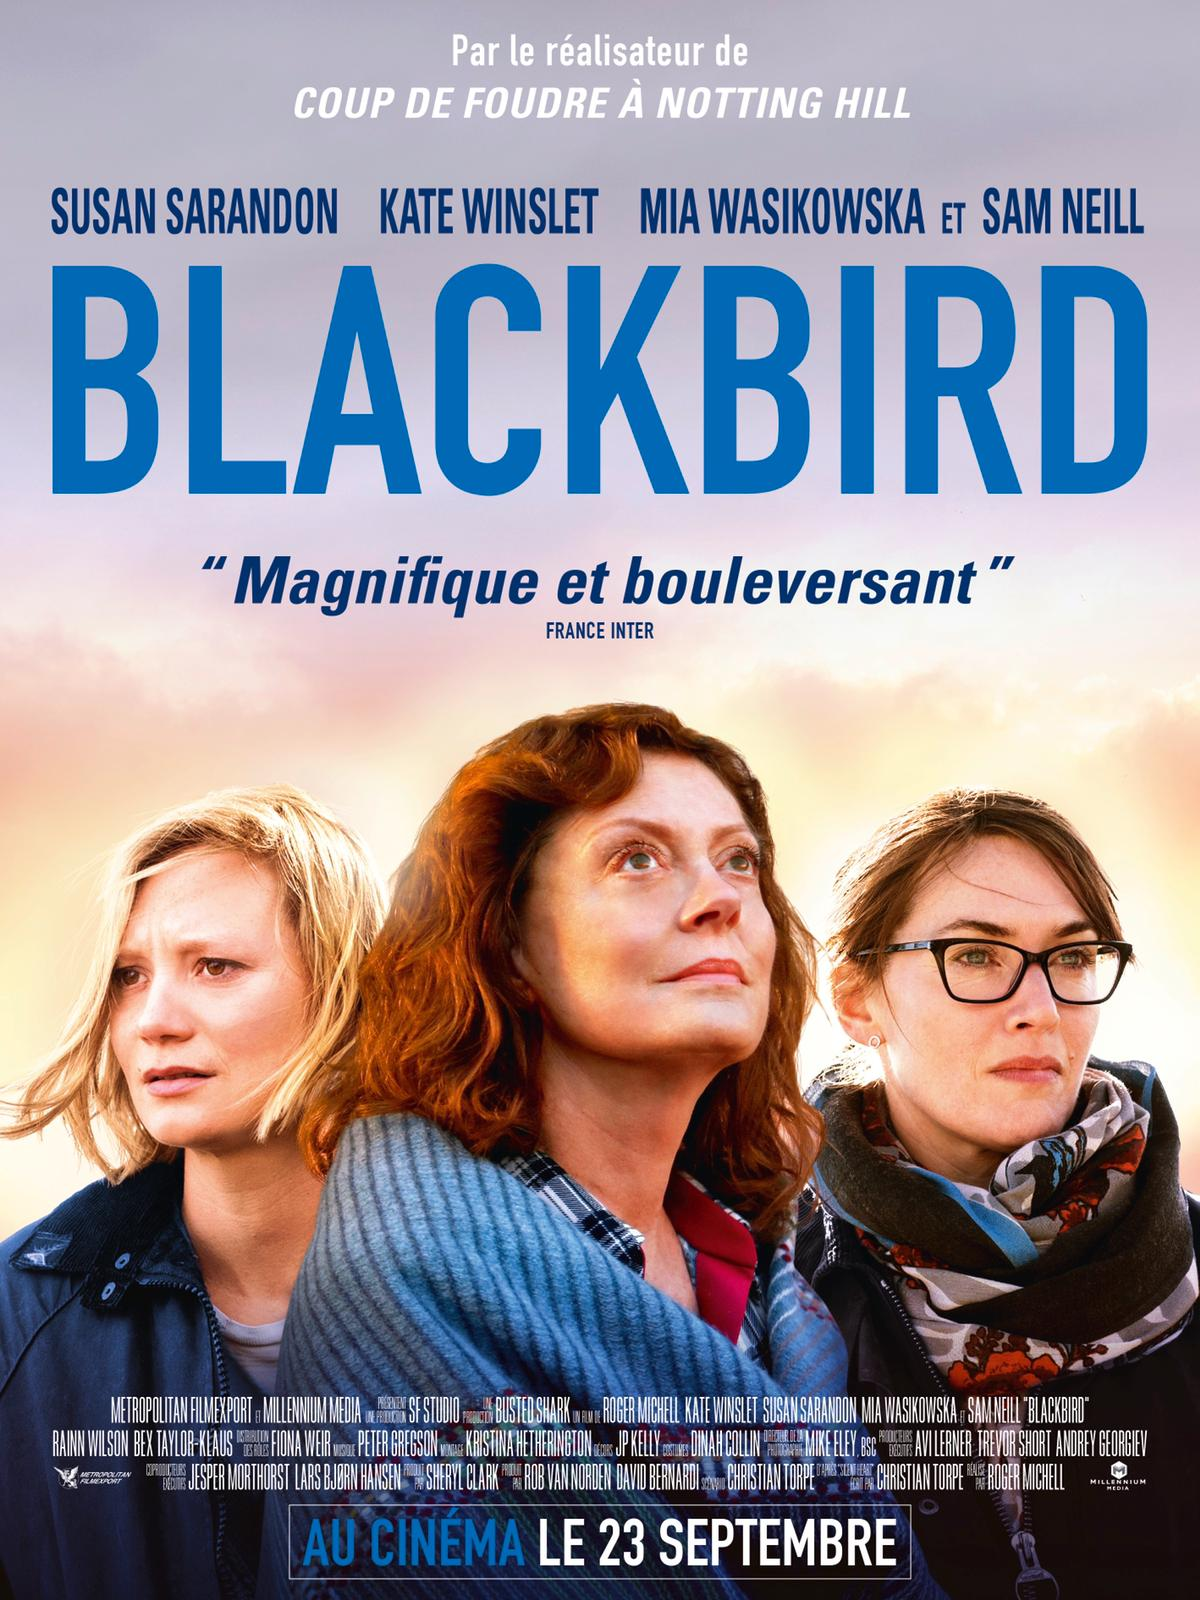 Blackbird - film 2020 - AlloCiné